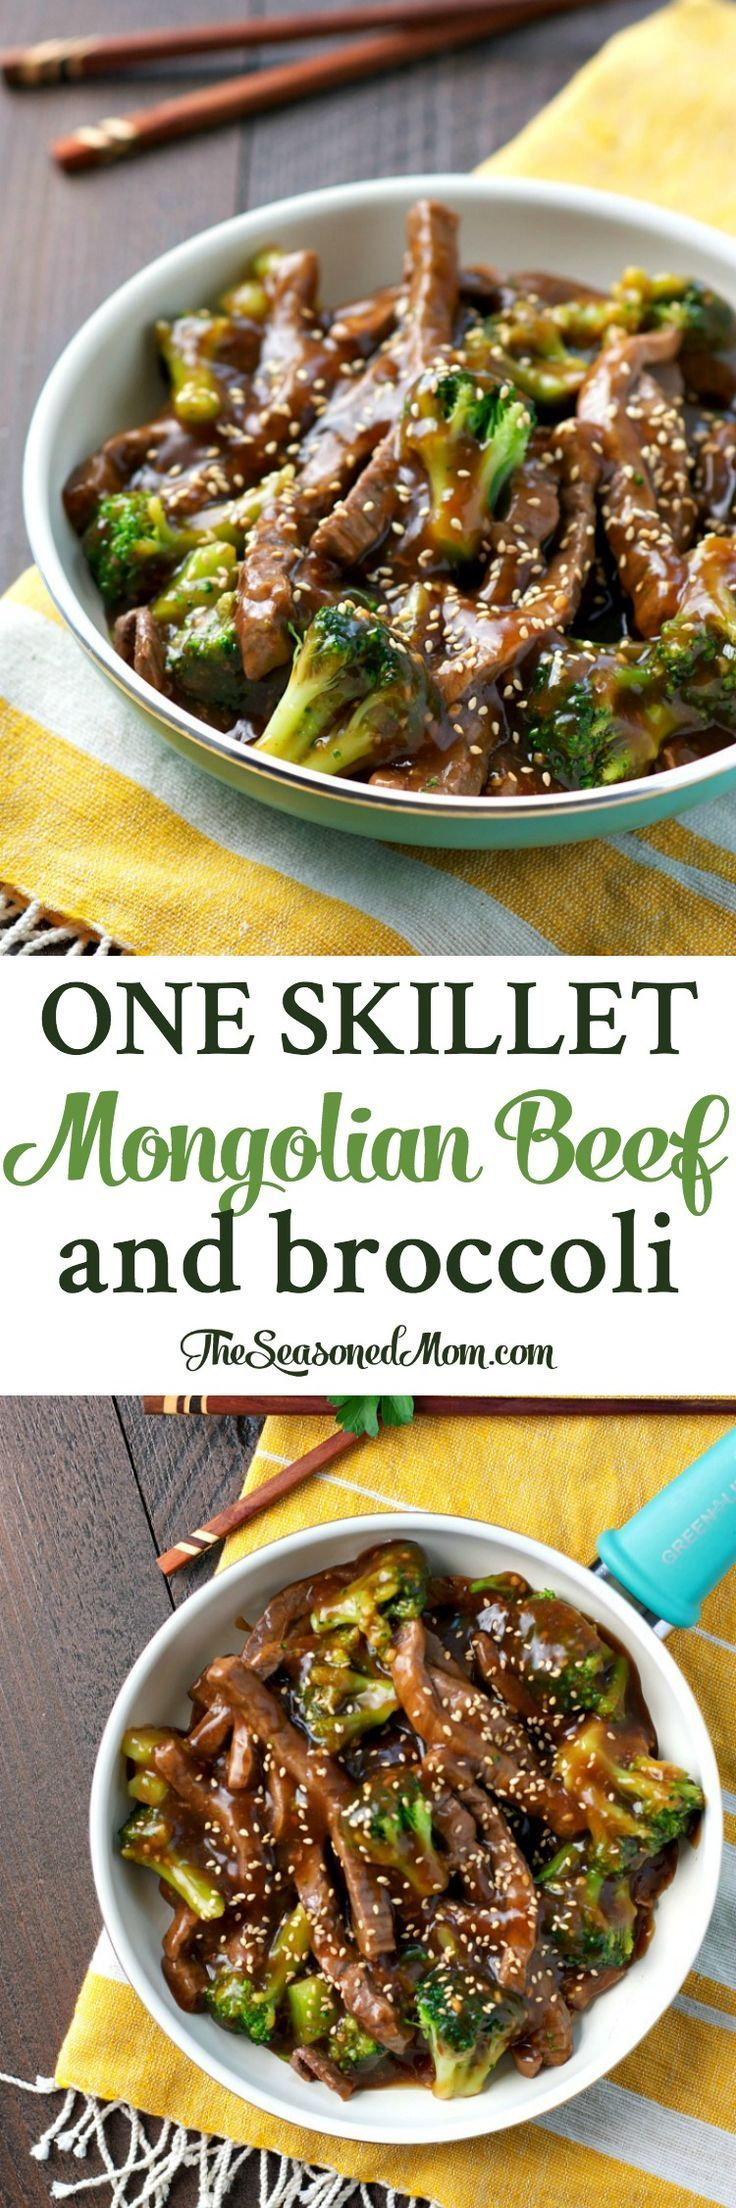 With just one skillet, 20 minutes, and a handful of pantry ingredients, this One Skillet Mongolian Beef with Broccoli is an easy dinner that the entire family will love!